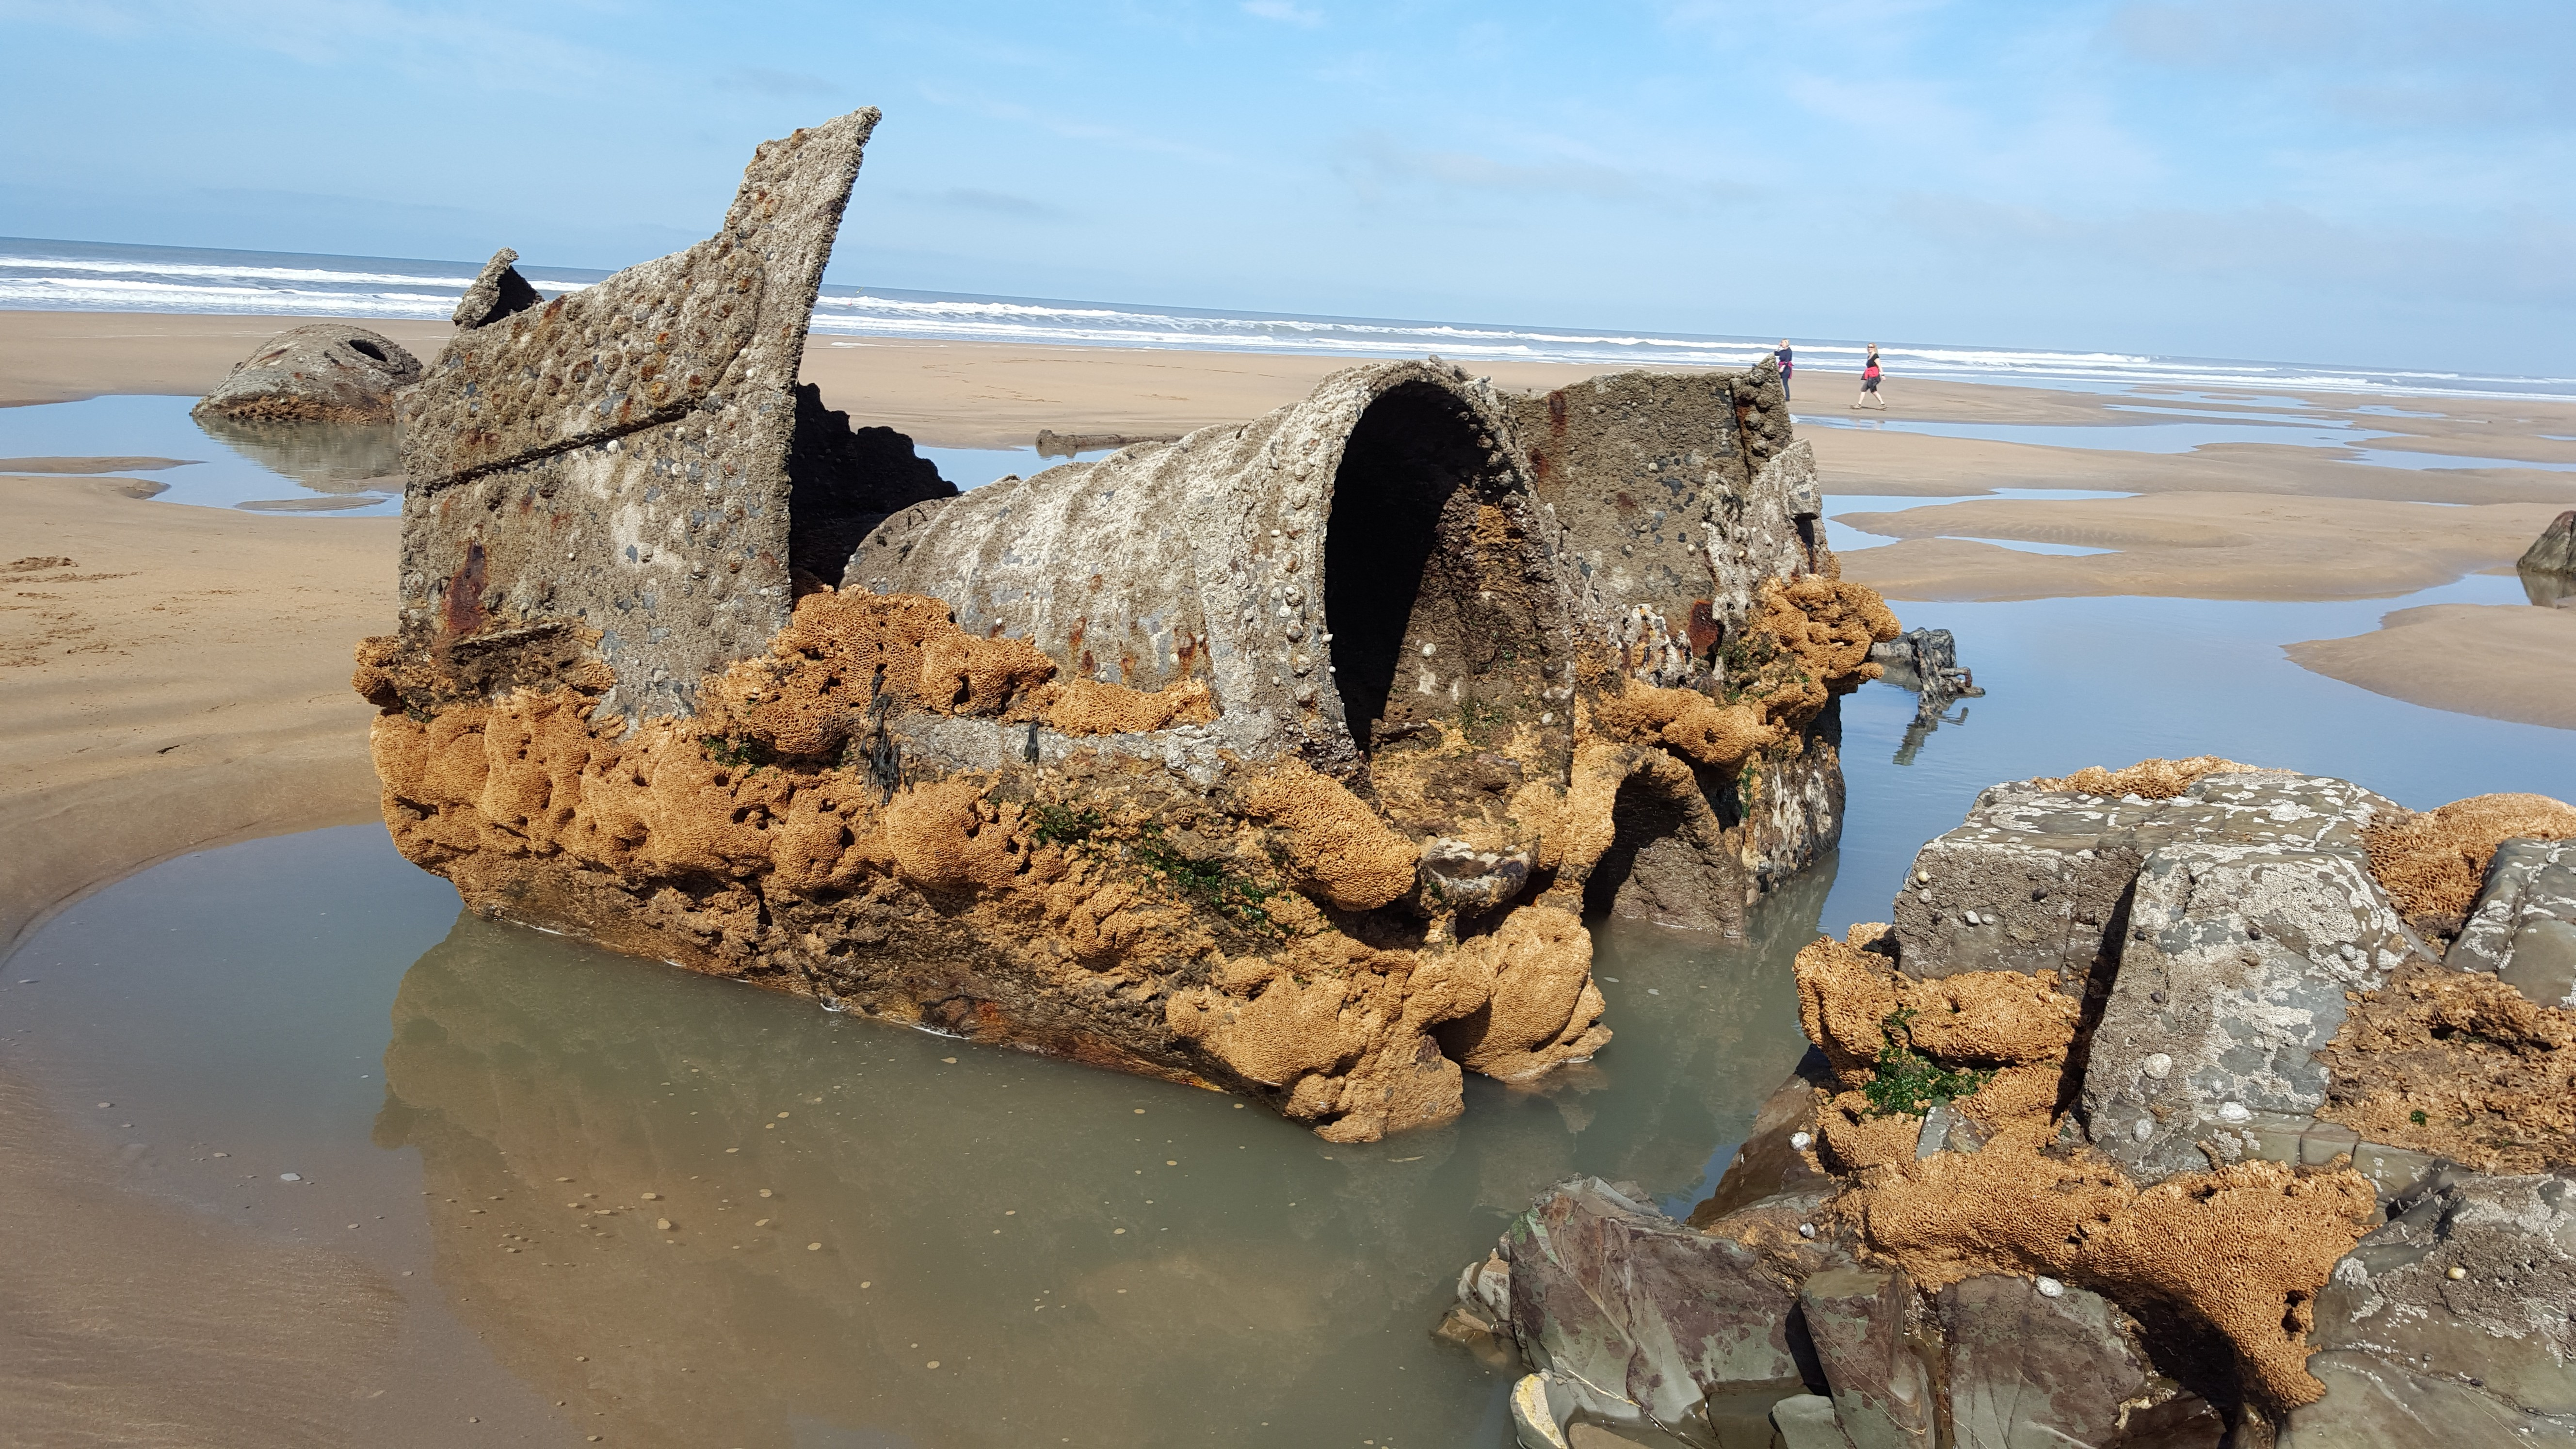 Part of the shipwreck